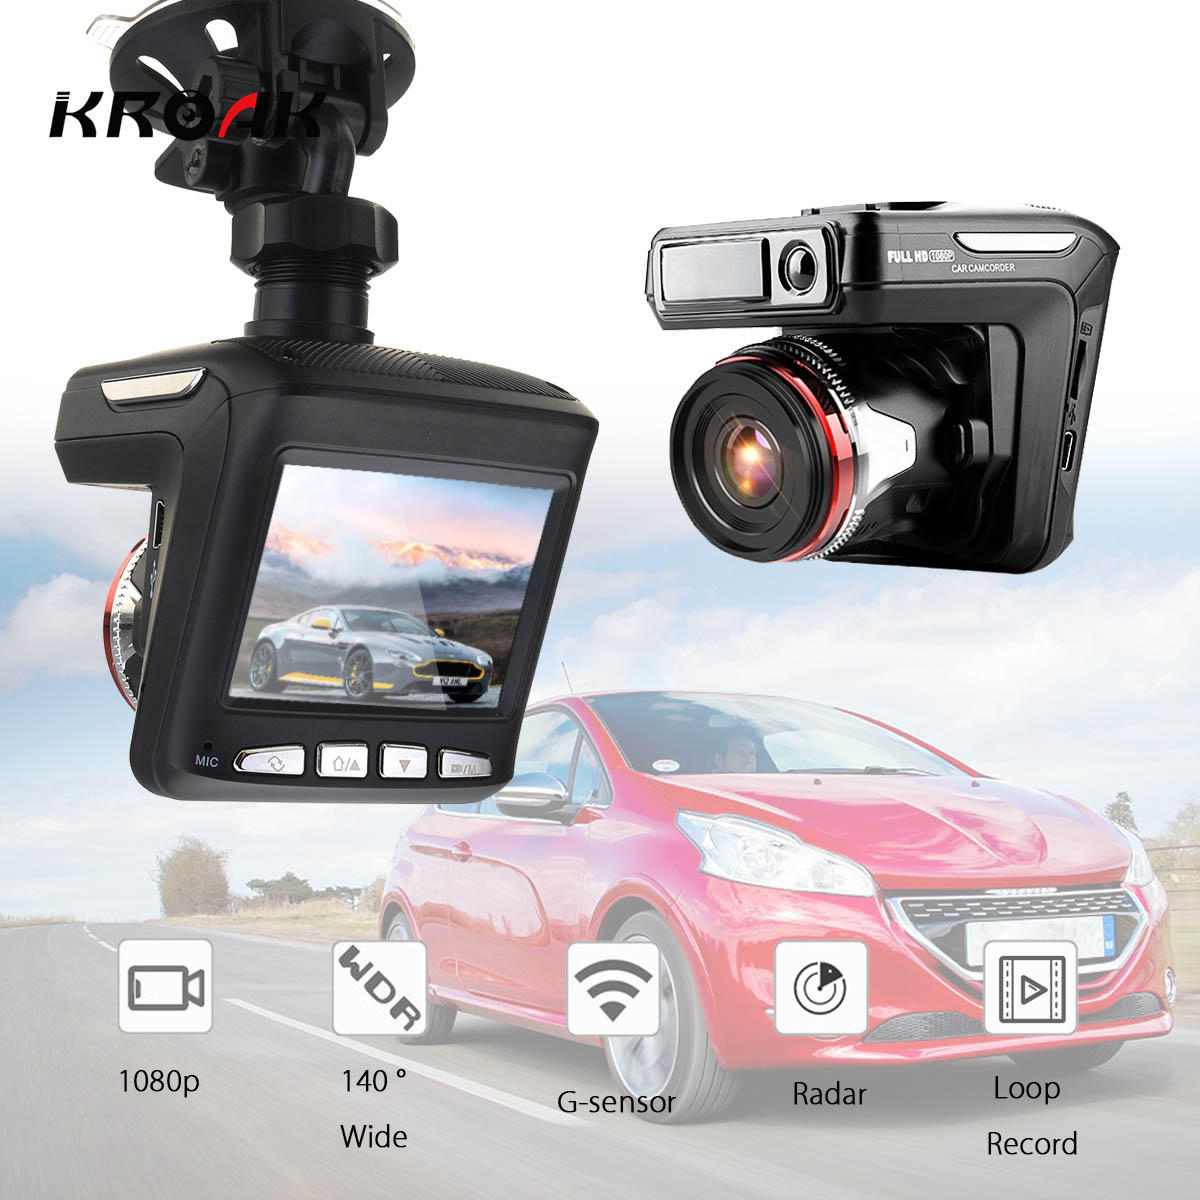 3 in 1 Car DVR Full HD 1080P Radar Detector Camera GPS 140 Degree Angle Car Video Recorder Dash Cam 2.4'' LCD Driving Recording hight quality gt850w shadow1 band car dvr camera 2 7 lcd 140 degrees wide angle full hd 1280x1080p gps logger opetional